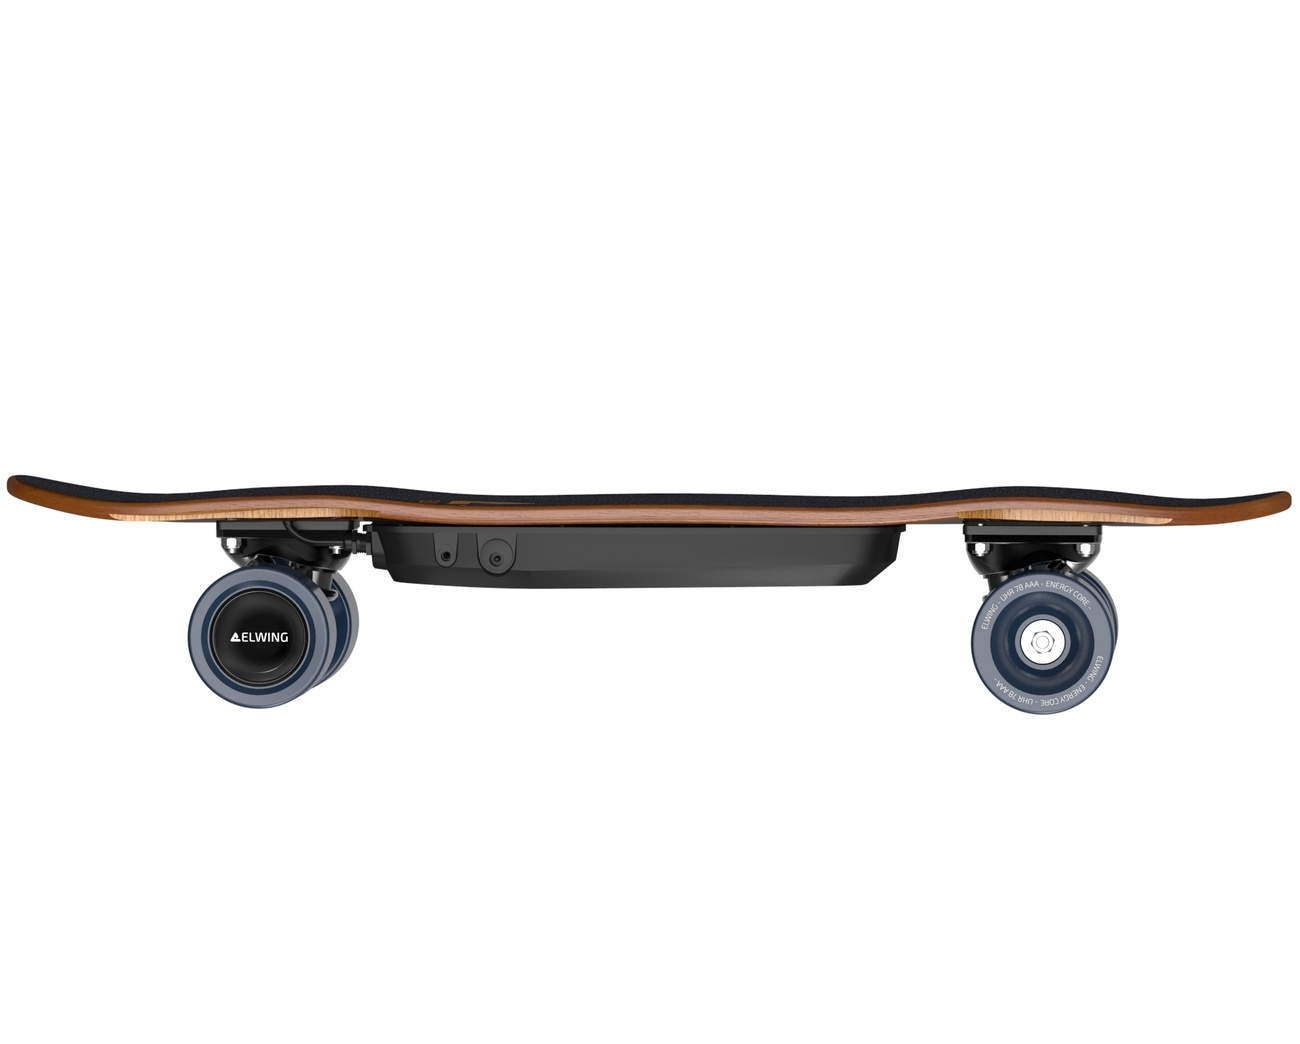 ELWING – World's Most Compact Electric Skateboard